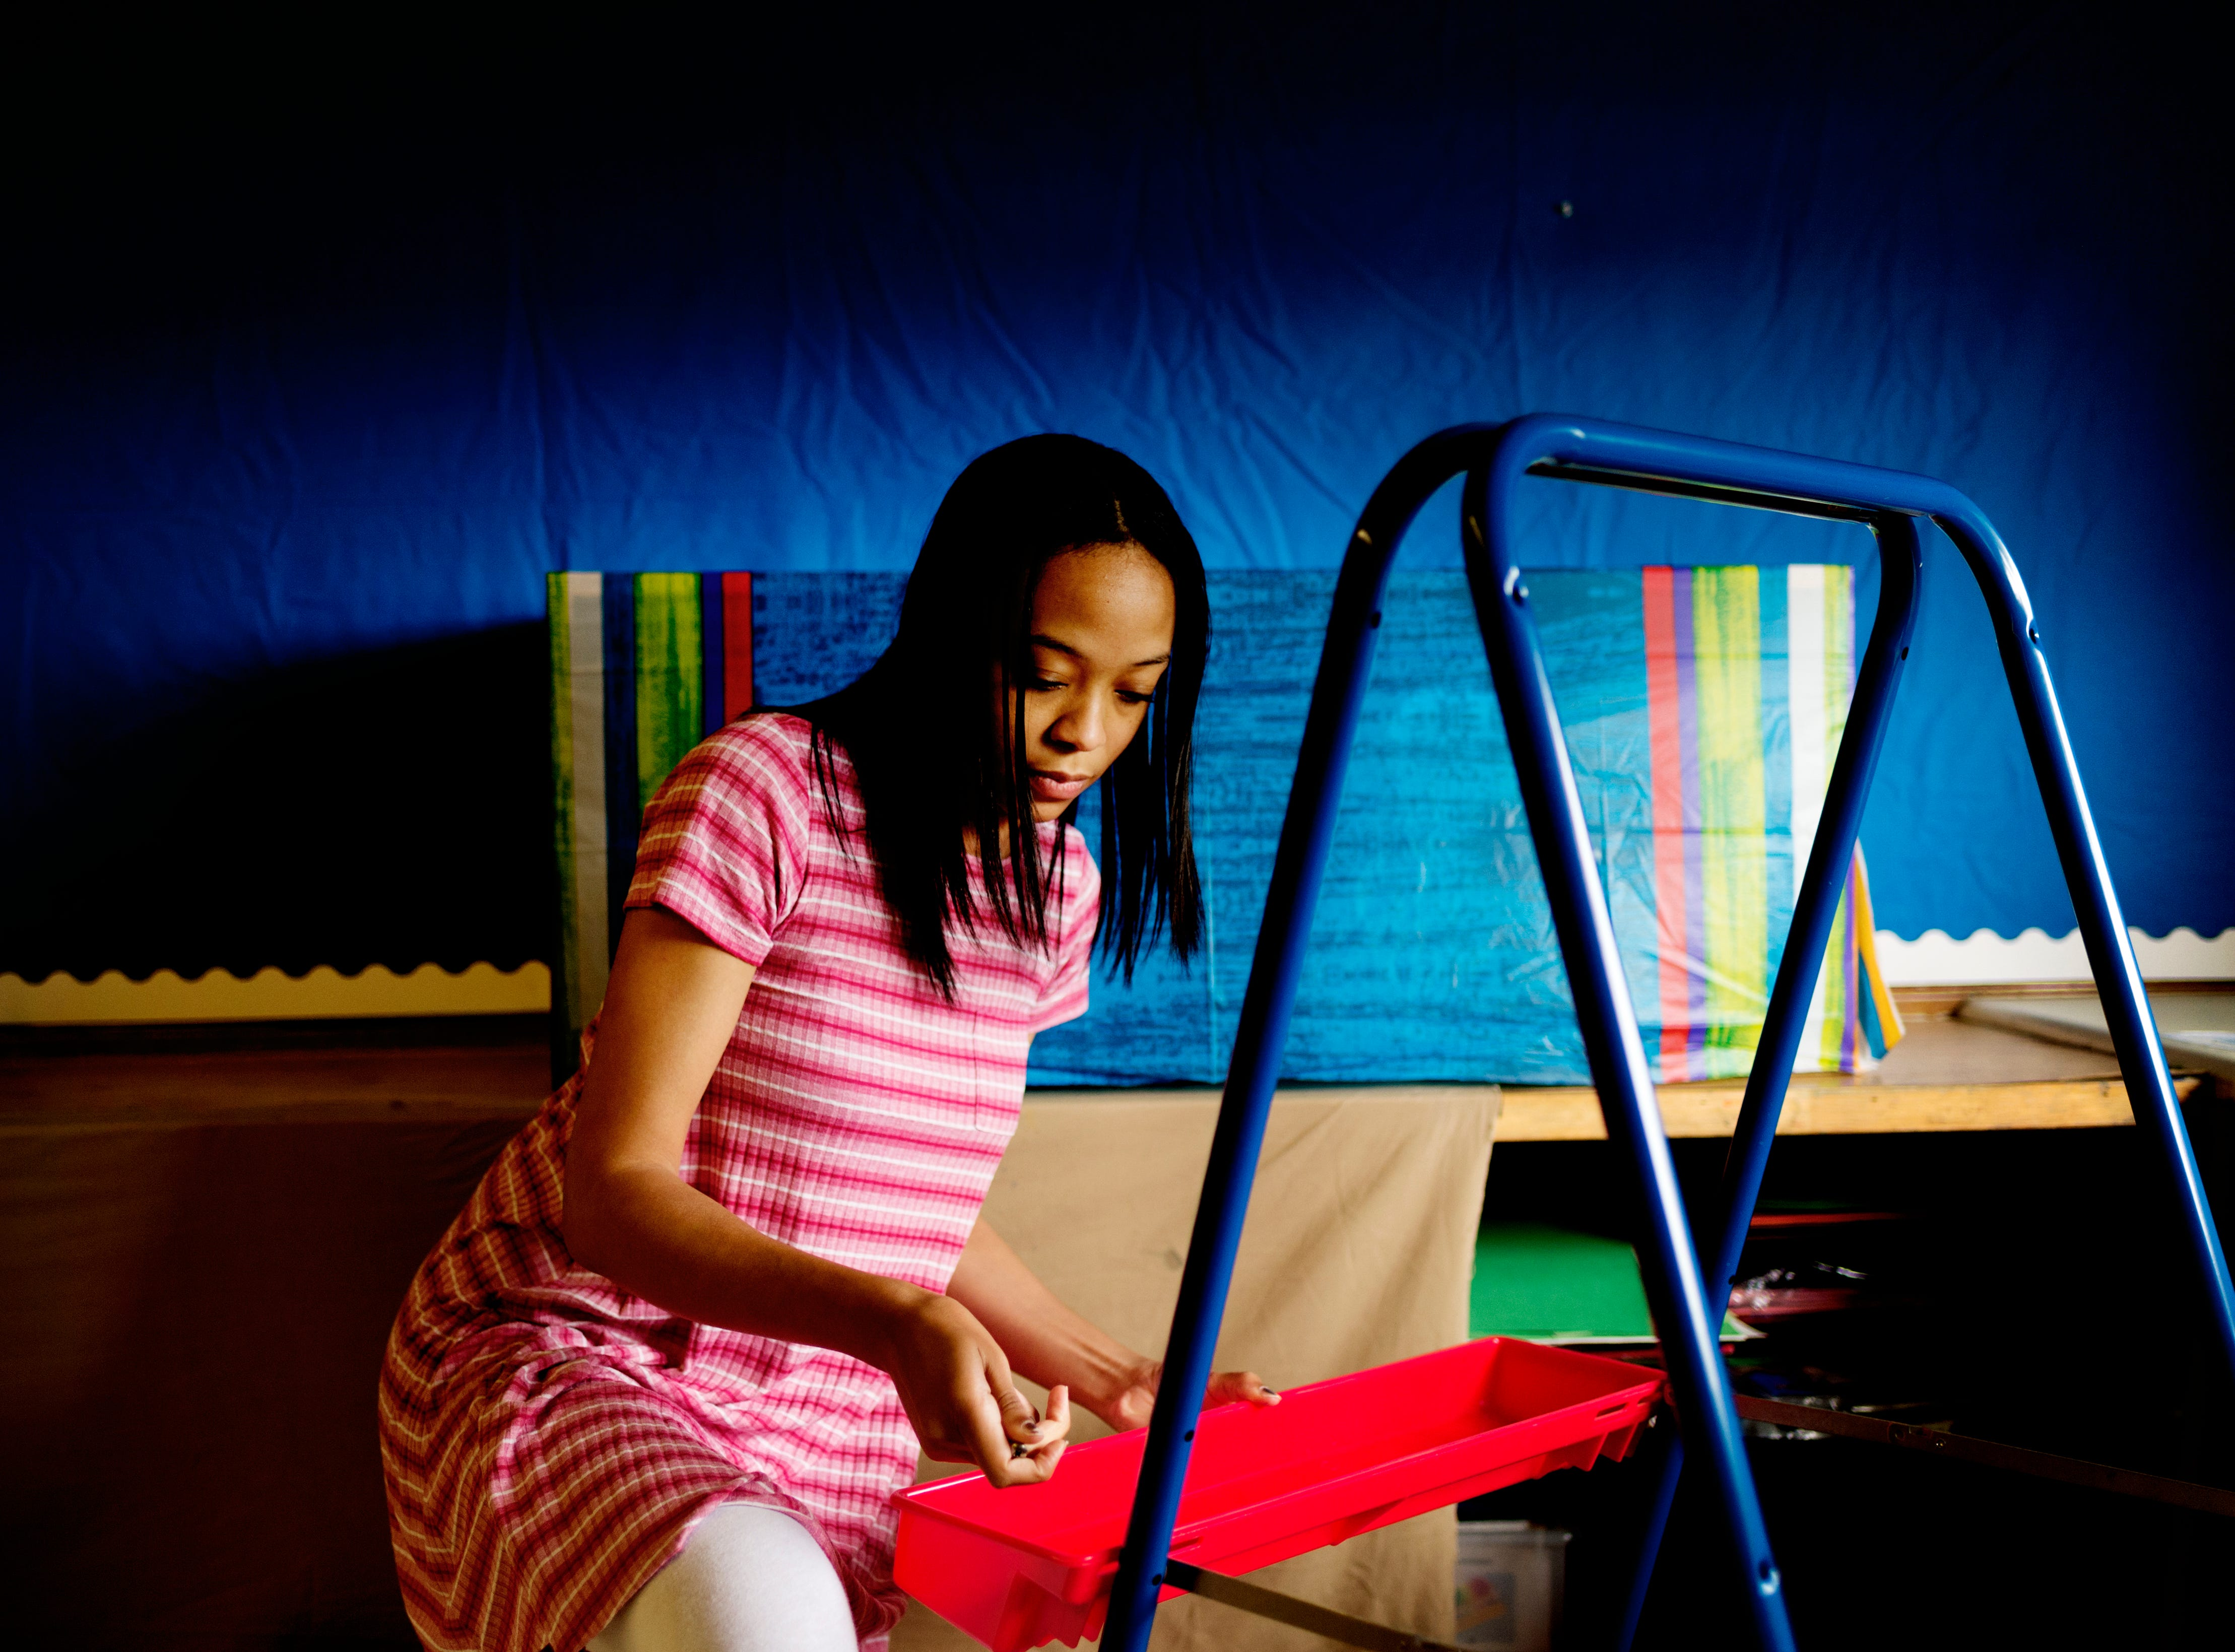 Kindergarten teacher Porscha Settlemyer assembles a painting easel in her room at Sam E. Hill Primary School in the Lonsdale community in Knoxville, Tennessee on Friday, August 3, 2018. The school has newly transitioned from a preschool into a primary school.